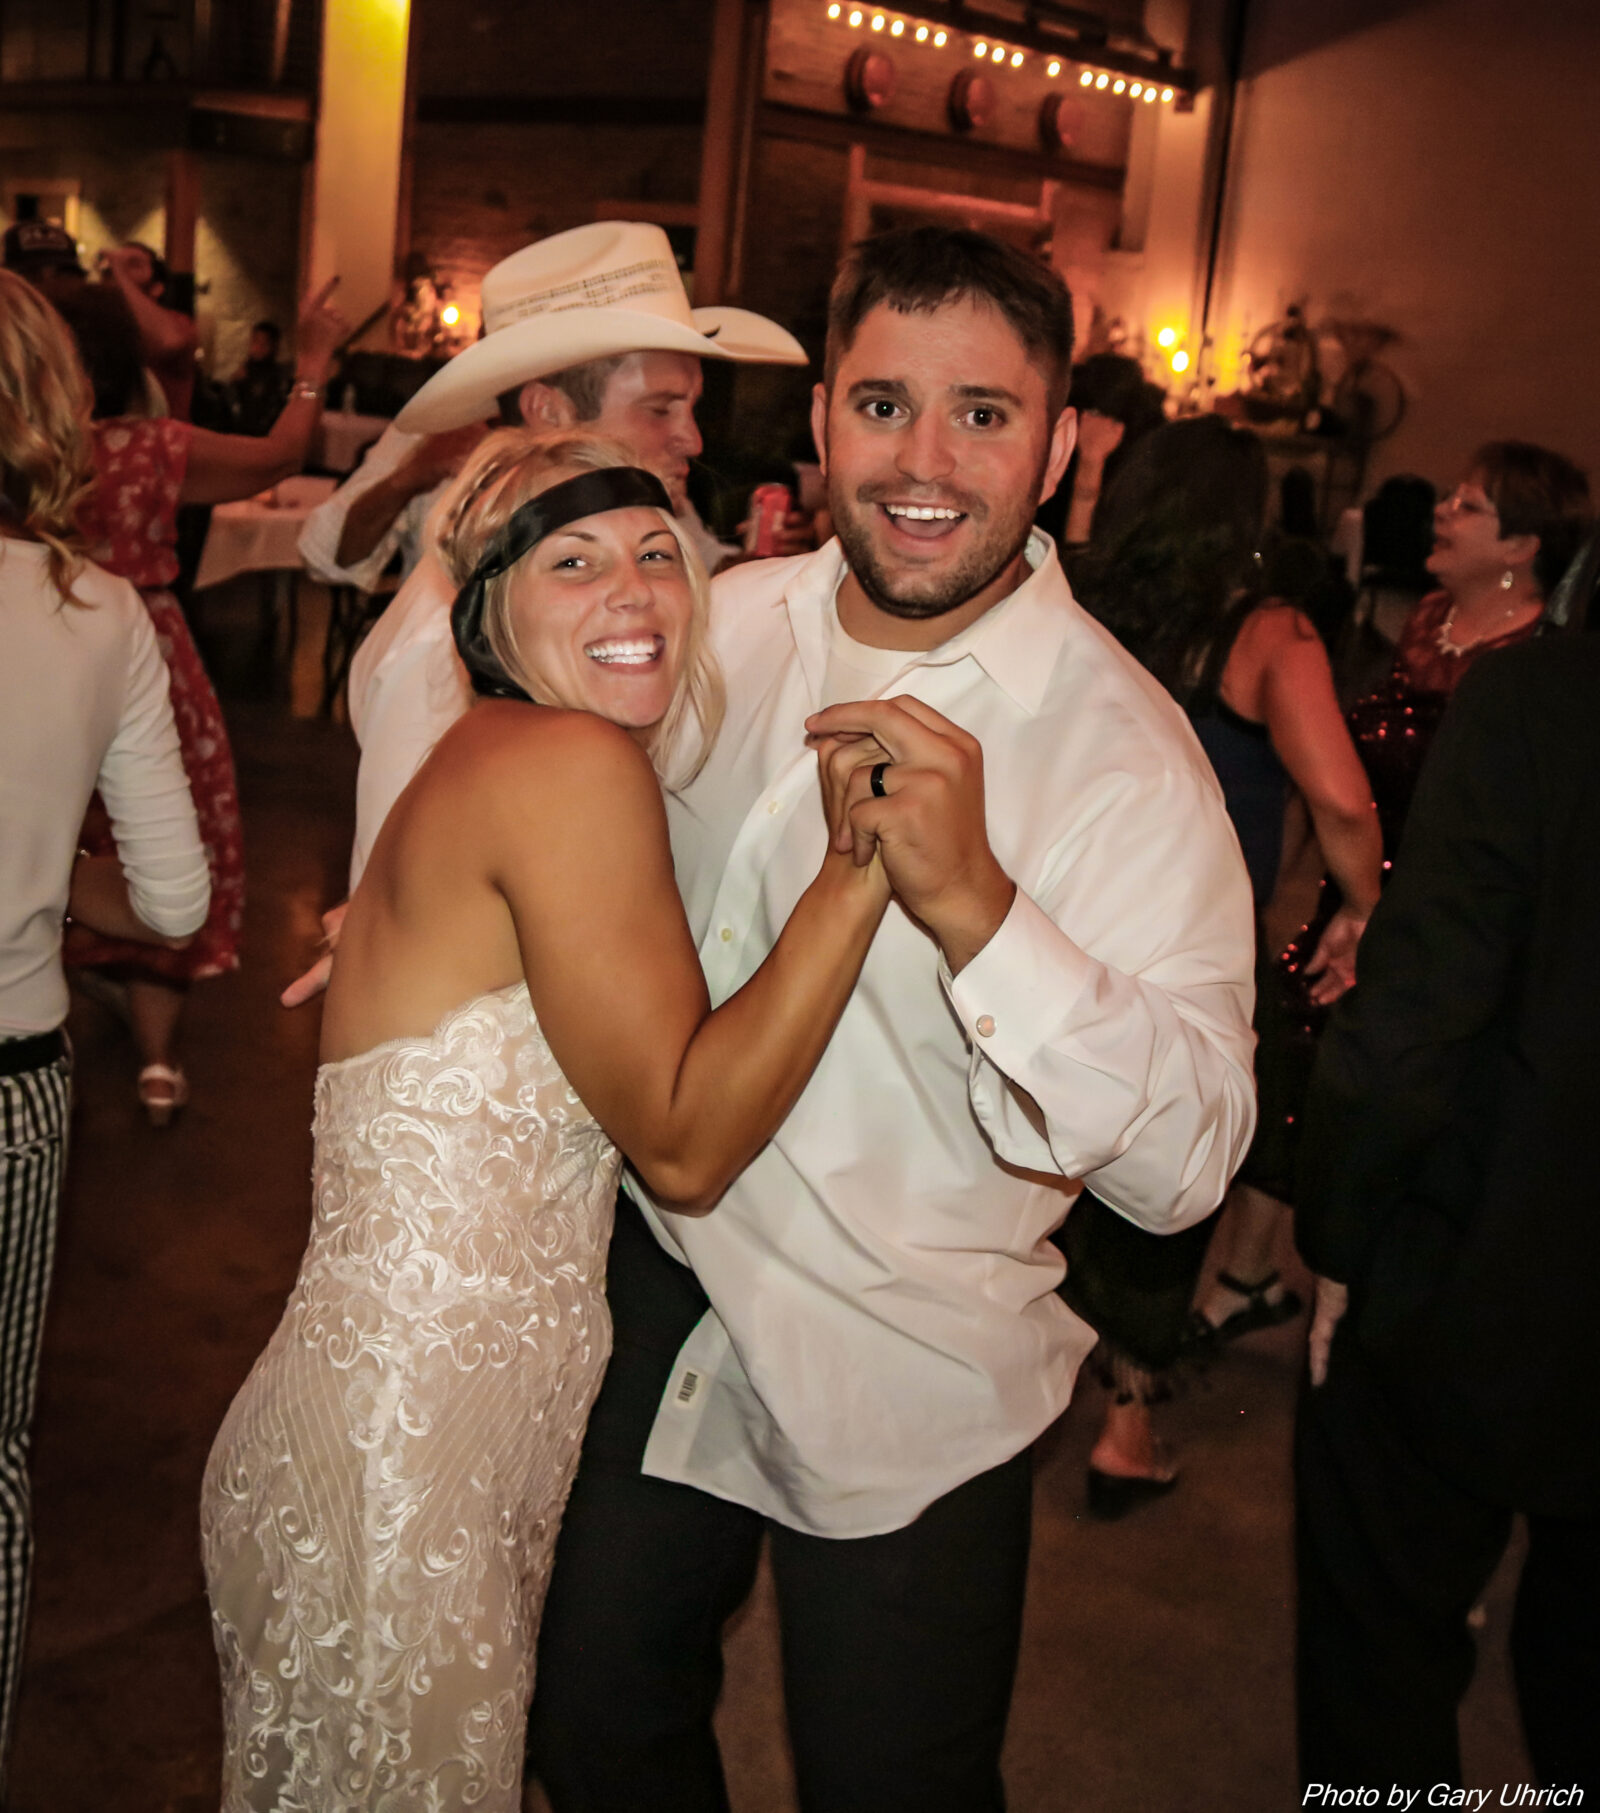 Wedding Reception The DJ Music System Last Song of the Night Bride and Groom Happy Having Fun